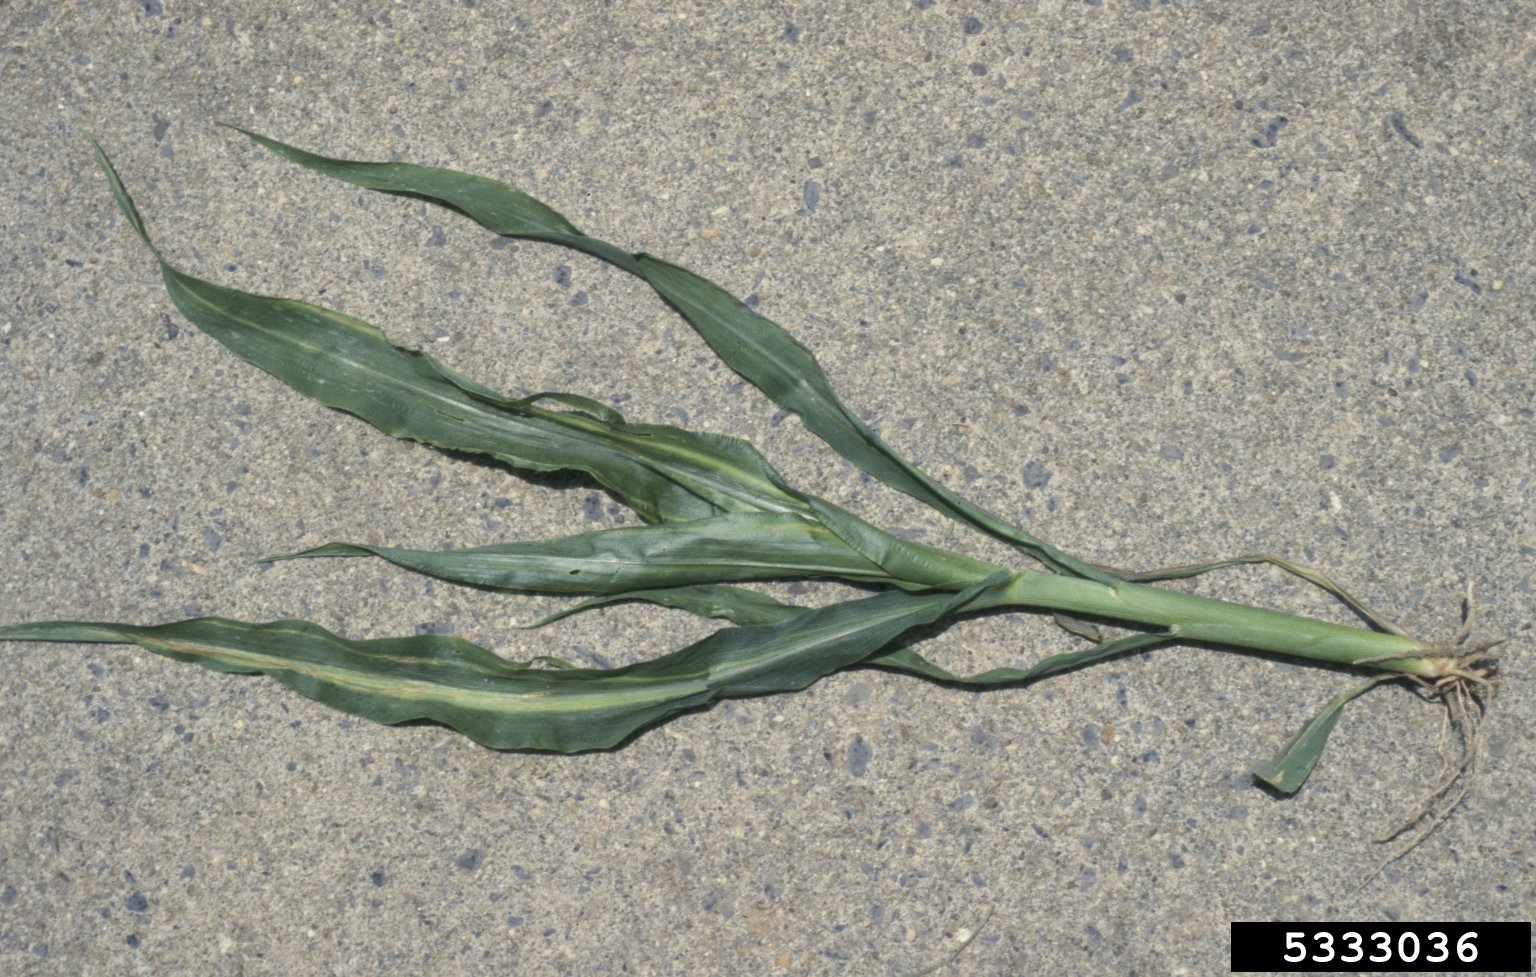 1551899233 managing corn bacterial leaf blight takeseeds com - Managing Corn Bacterial Leaf Blight